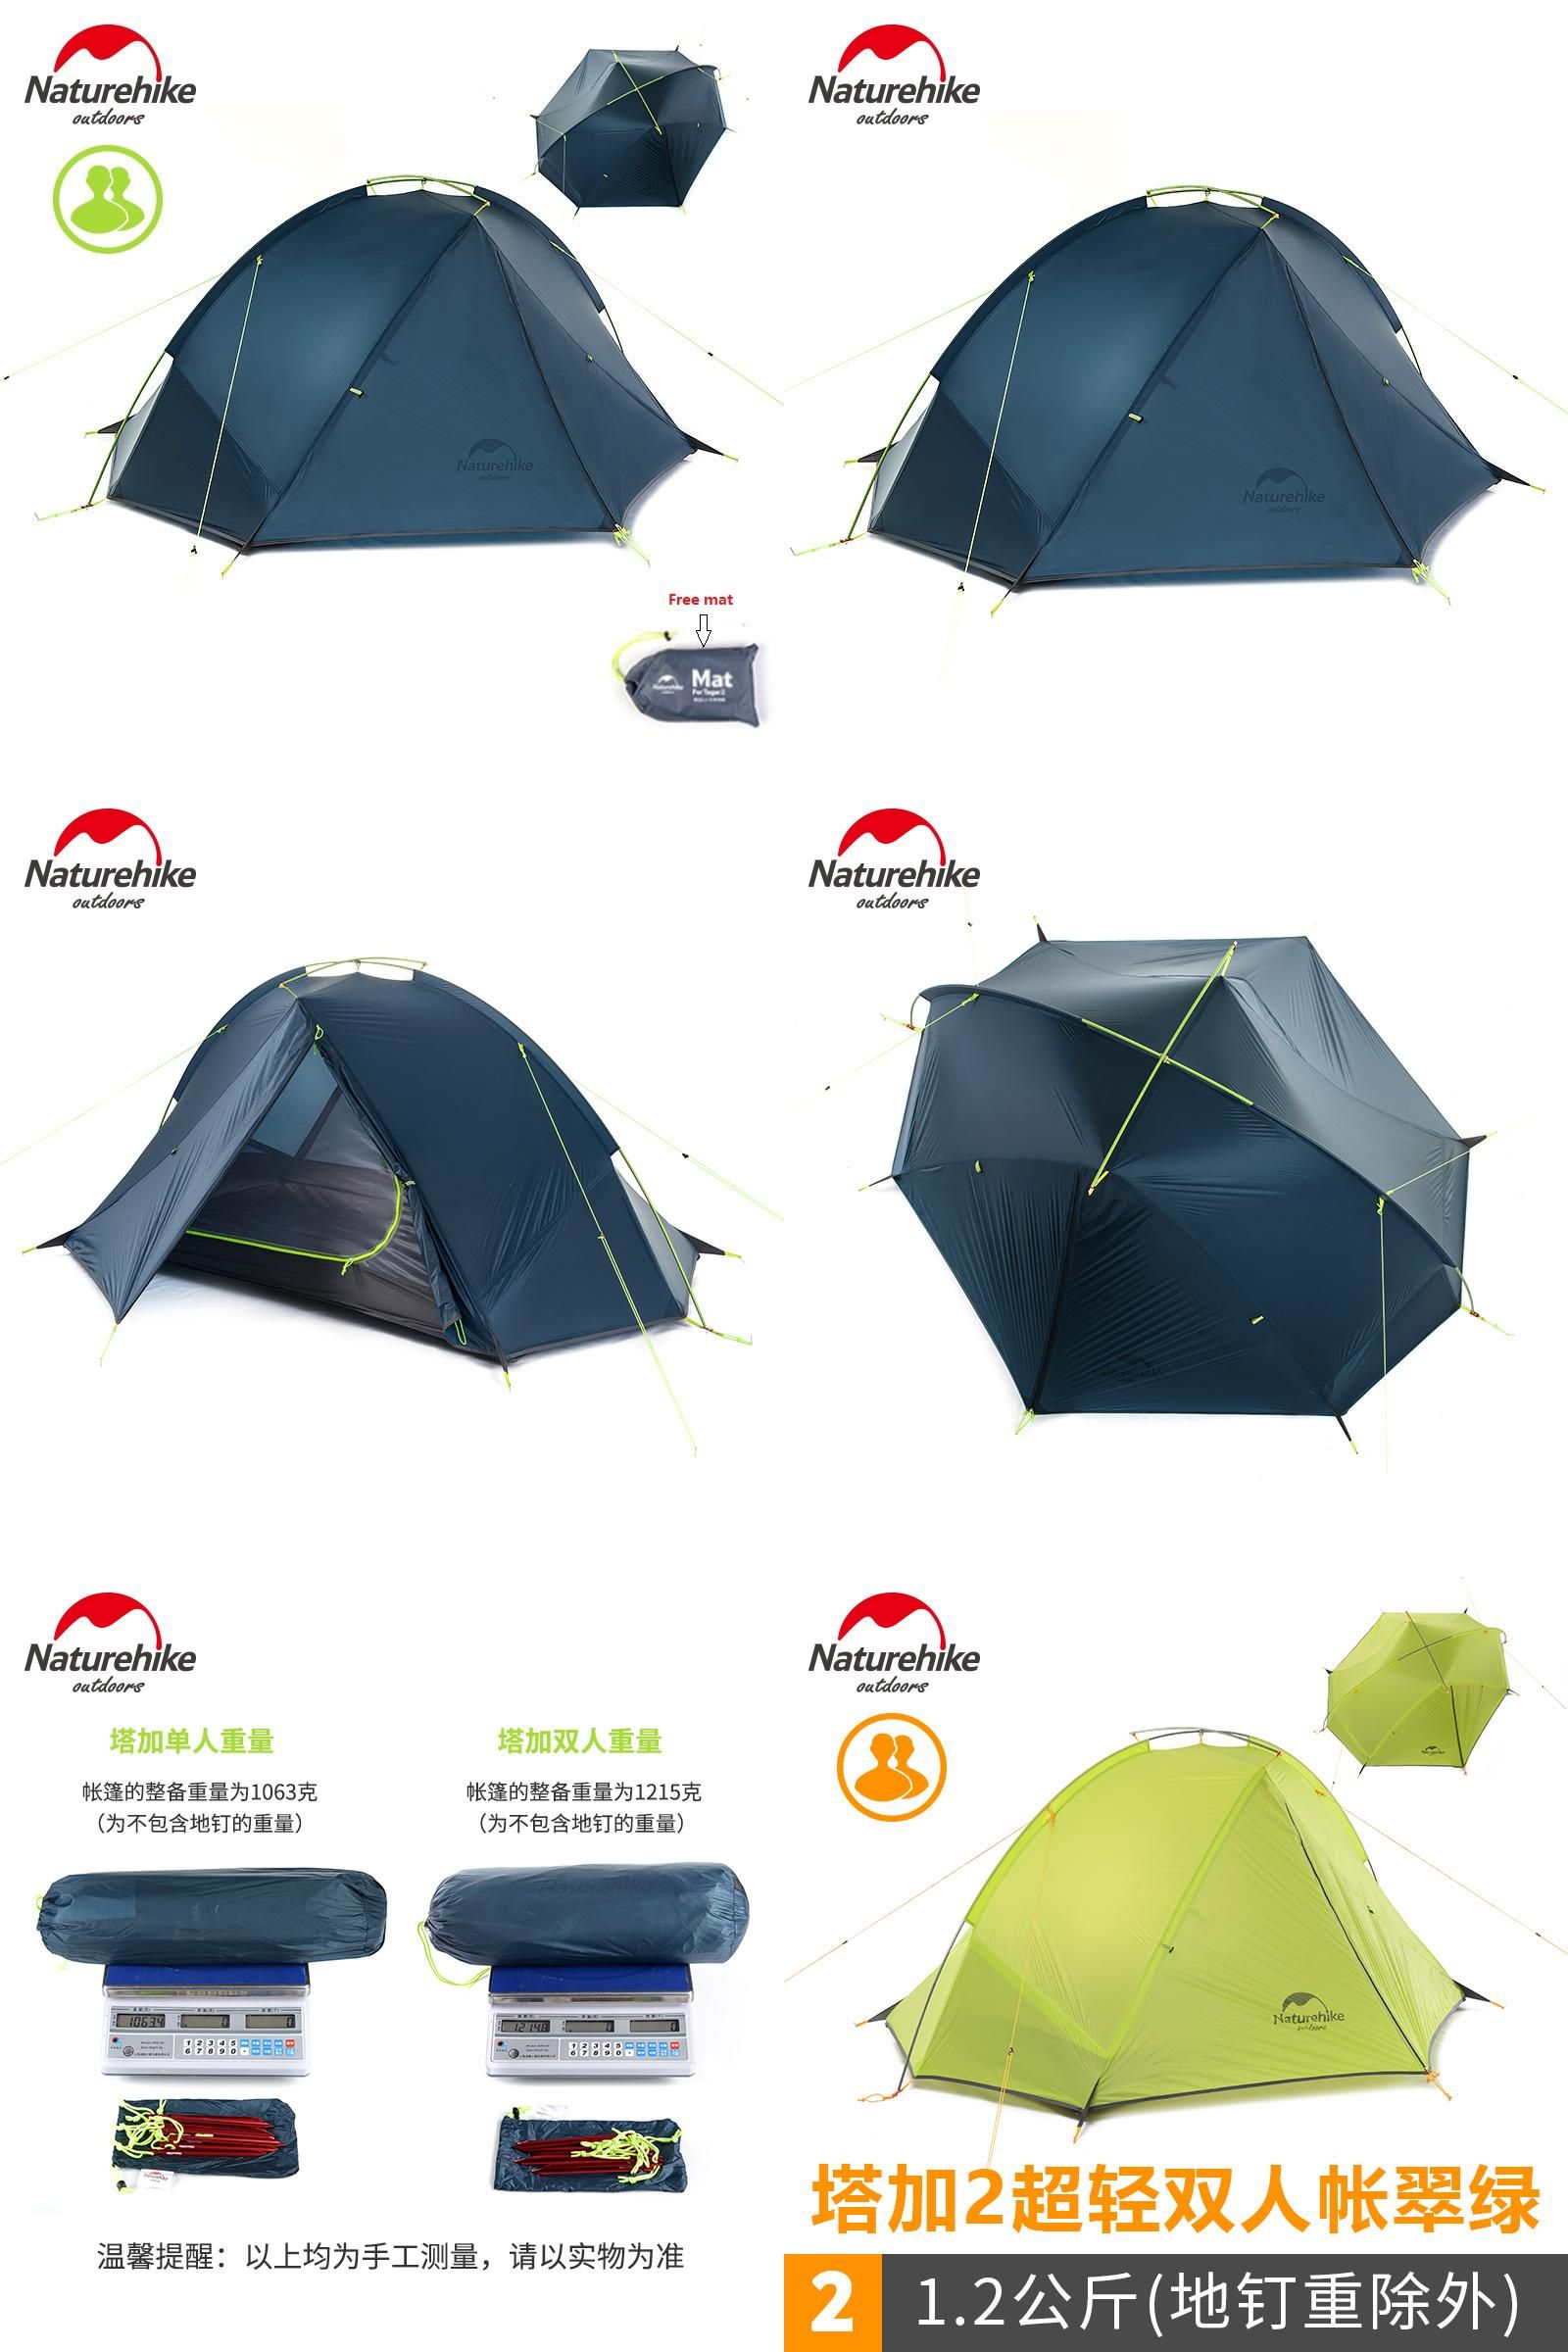 [Visit to Buy] FREE MAT Naturehike ultralight Taga tent 1 person/2 person  sc 1 st  Pinterest & Visit to Buy] FREE MAT Naturehike ultralight Taga tent 1 person/2 ...